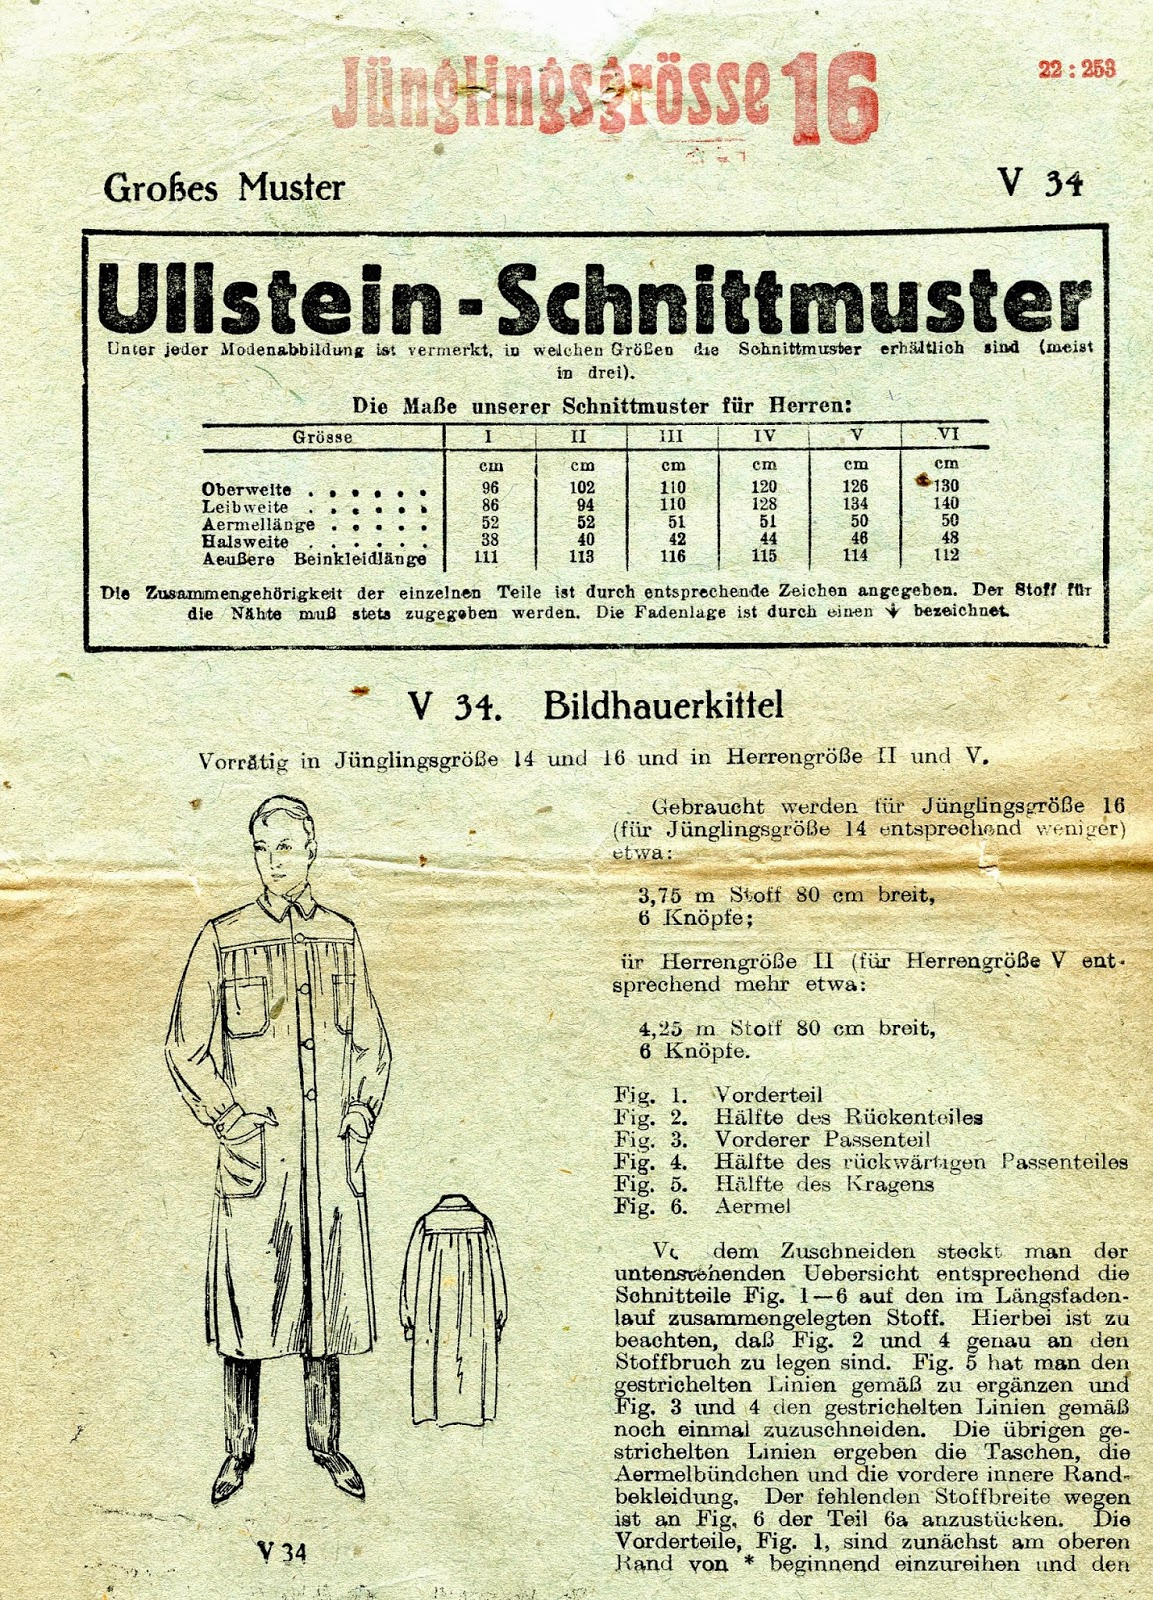 Side By Side 80 Cm Breit Unsung Sewing Patterns Ullstein Schnittmuster V 34 Bildhauerkittel